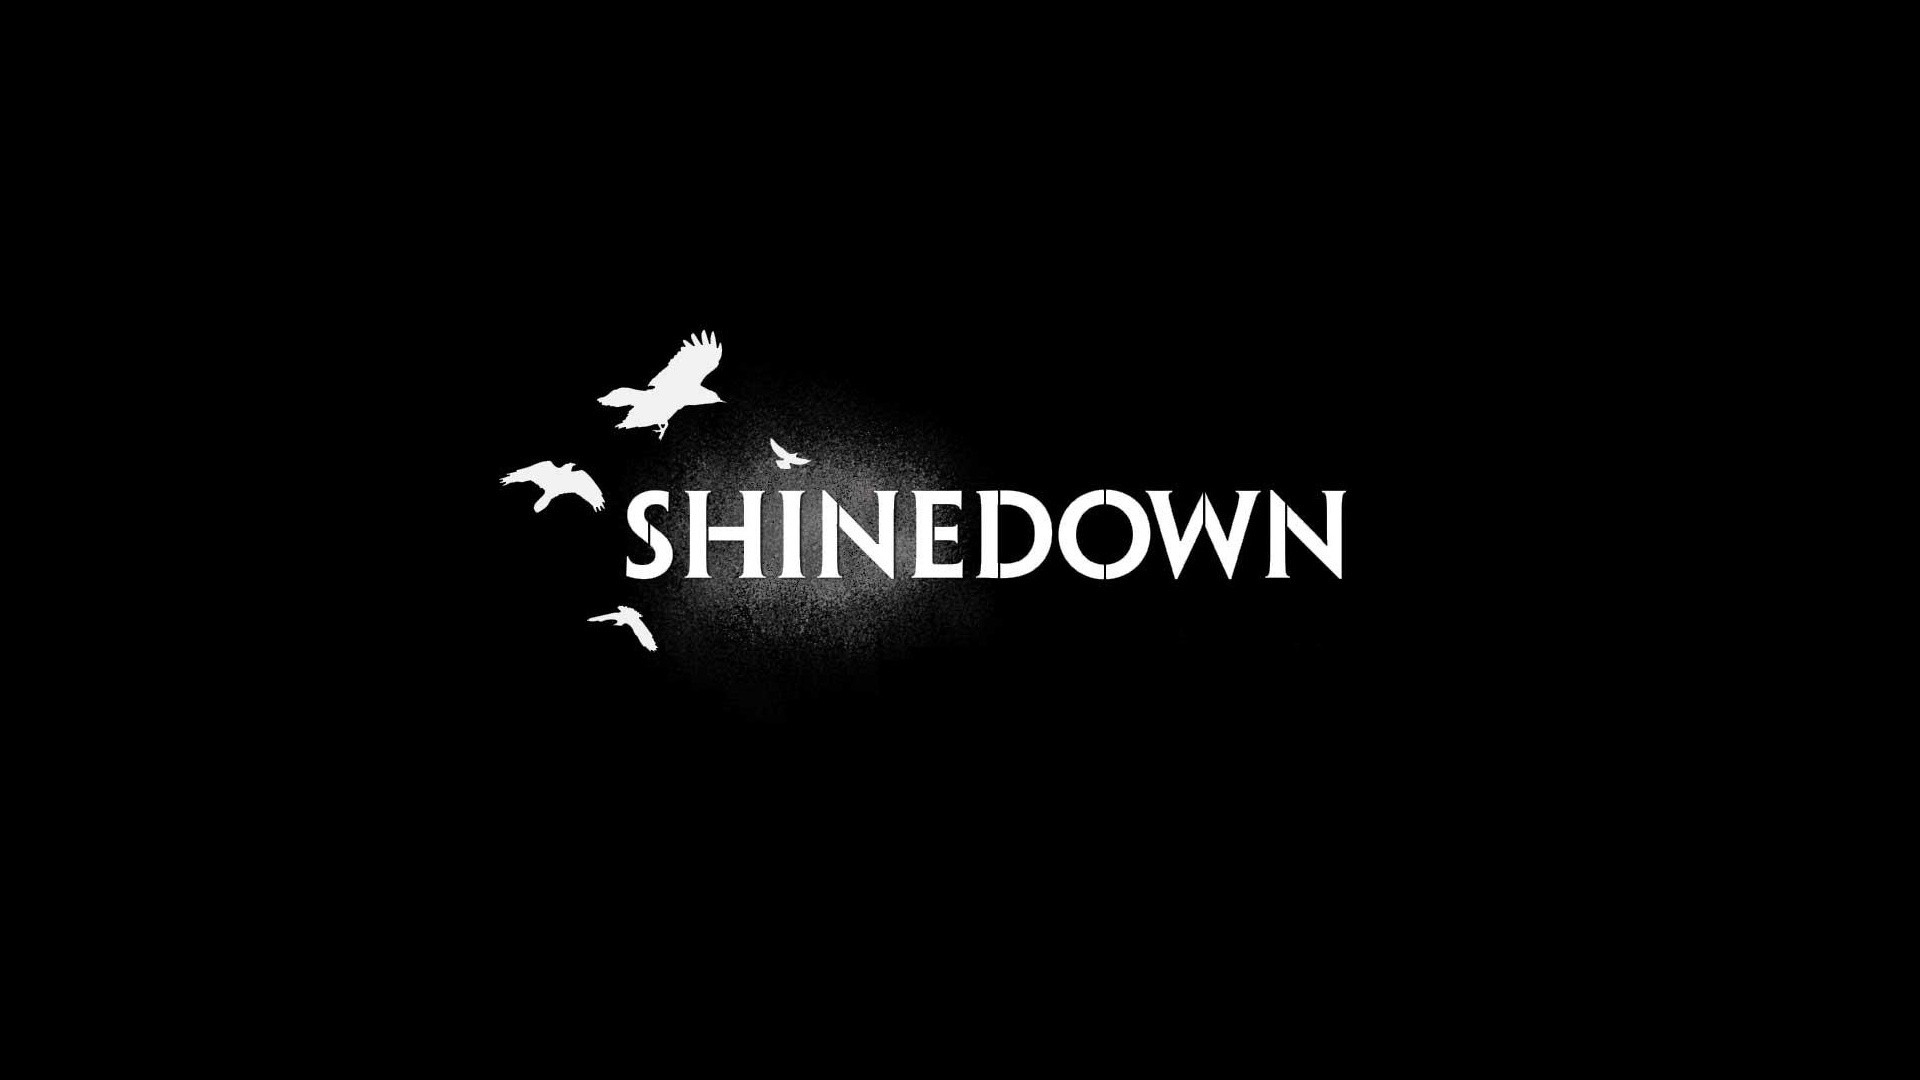 Shinedown download nice wallpaper